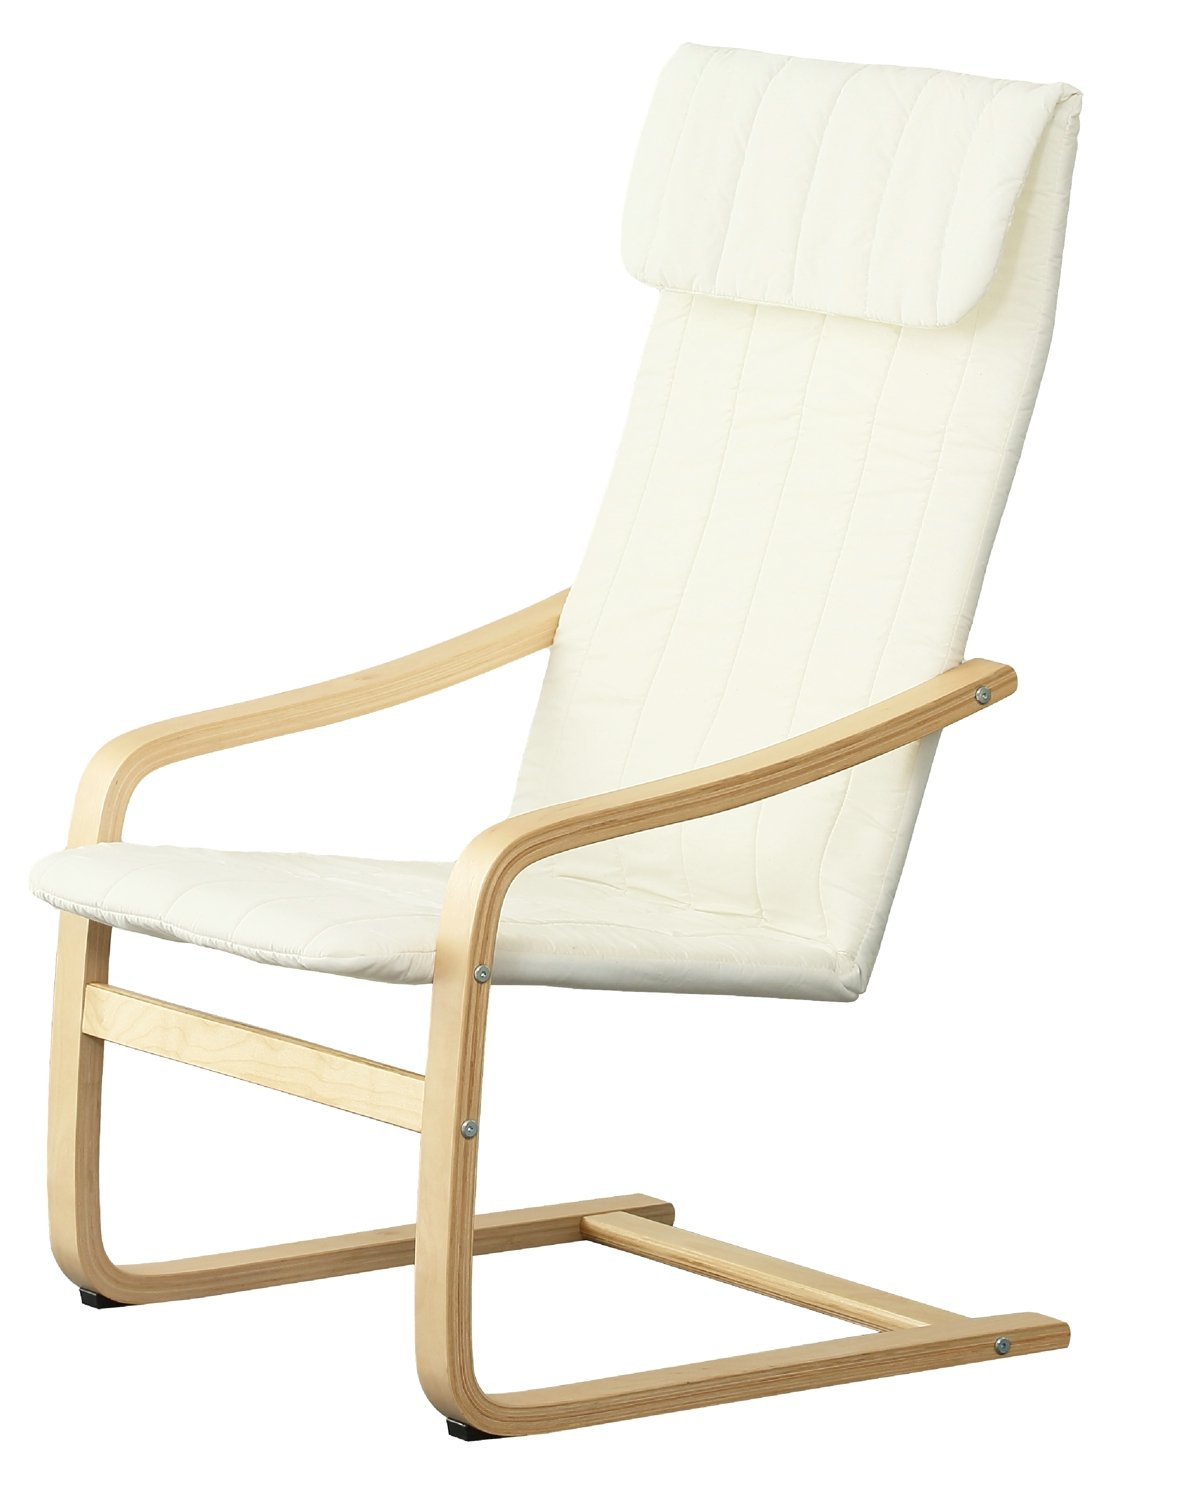 Orolay Relax Chair Lounge Bentwood with Poly cotton  : 61SqdEKlK9LSL1500 from www.ebay.co.uk size 1184 x 1500 jpeg 92kB